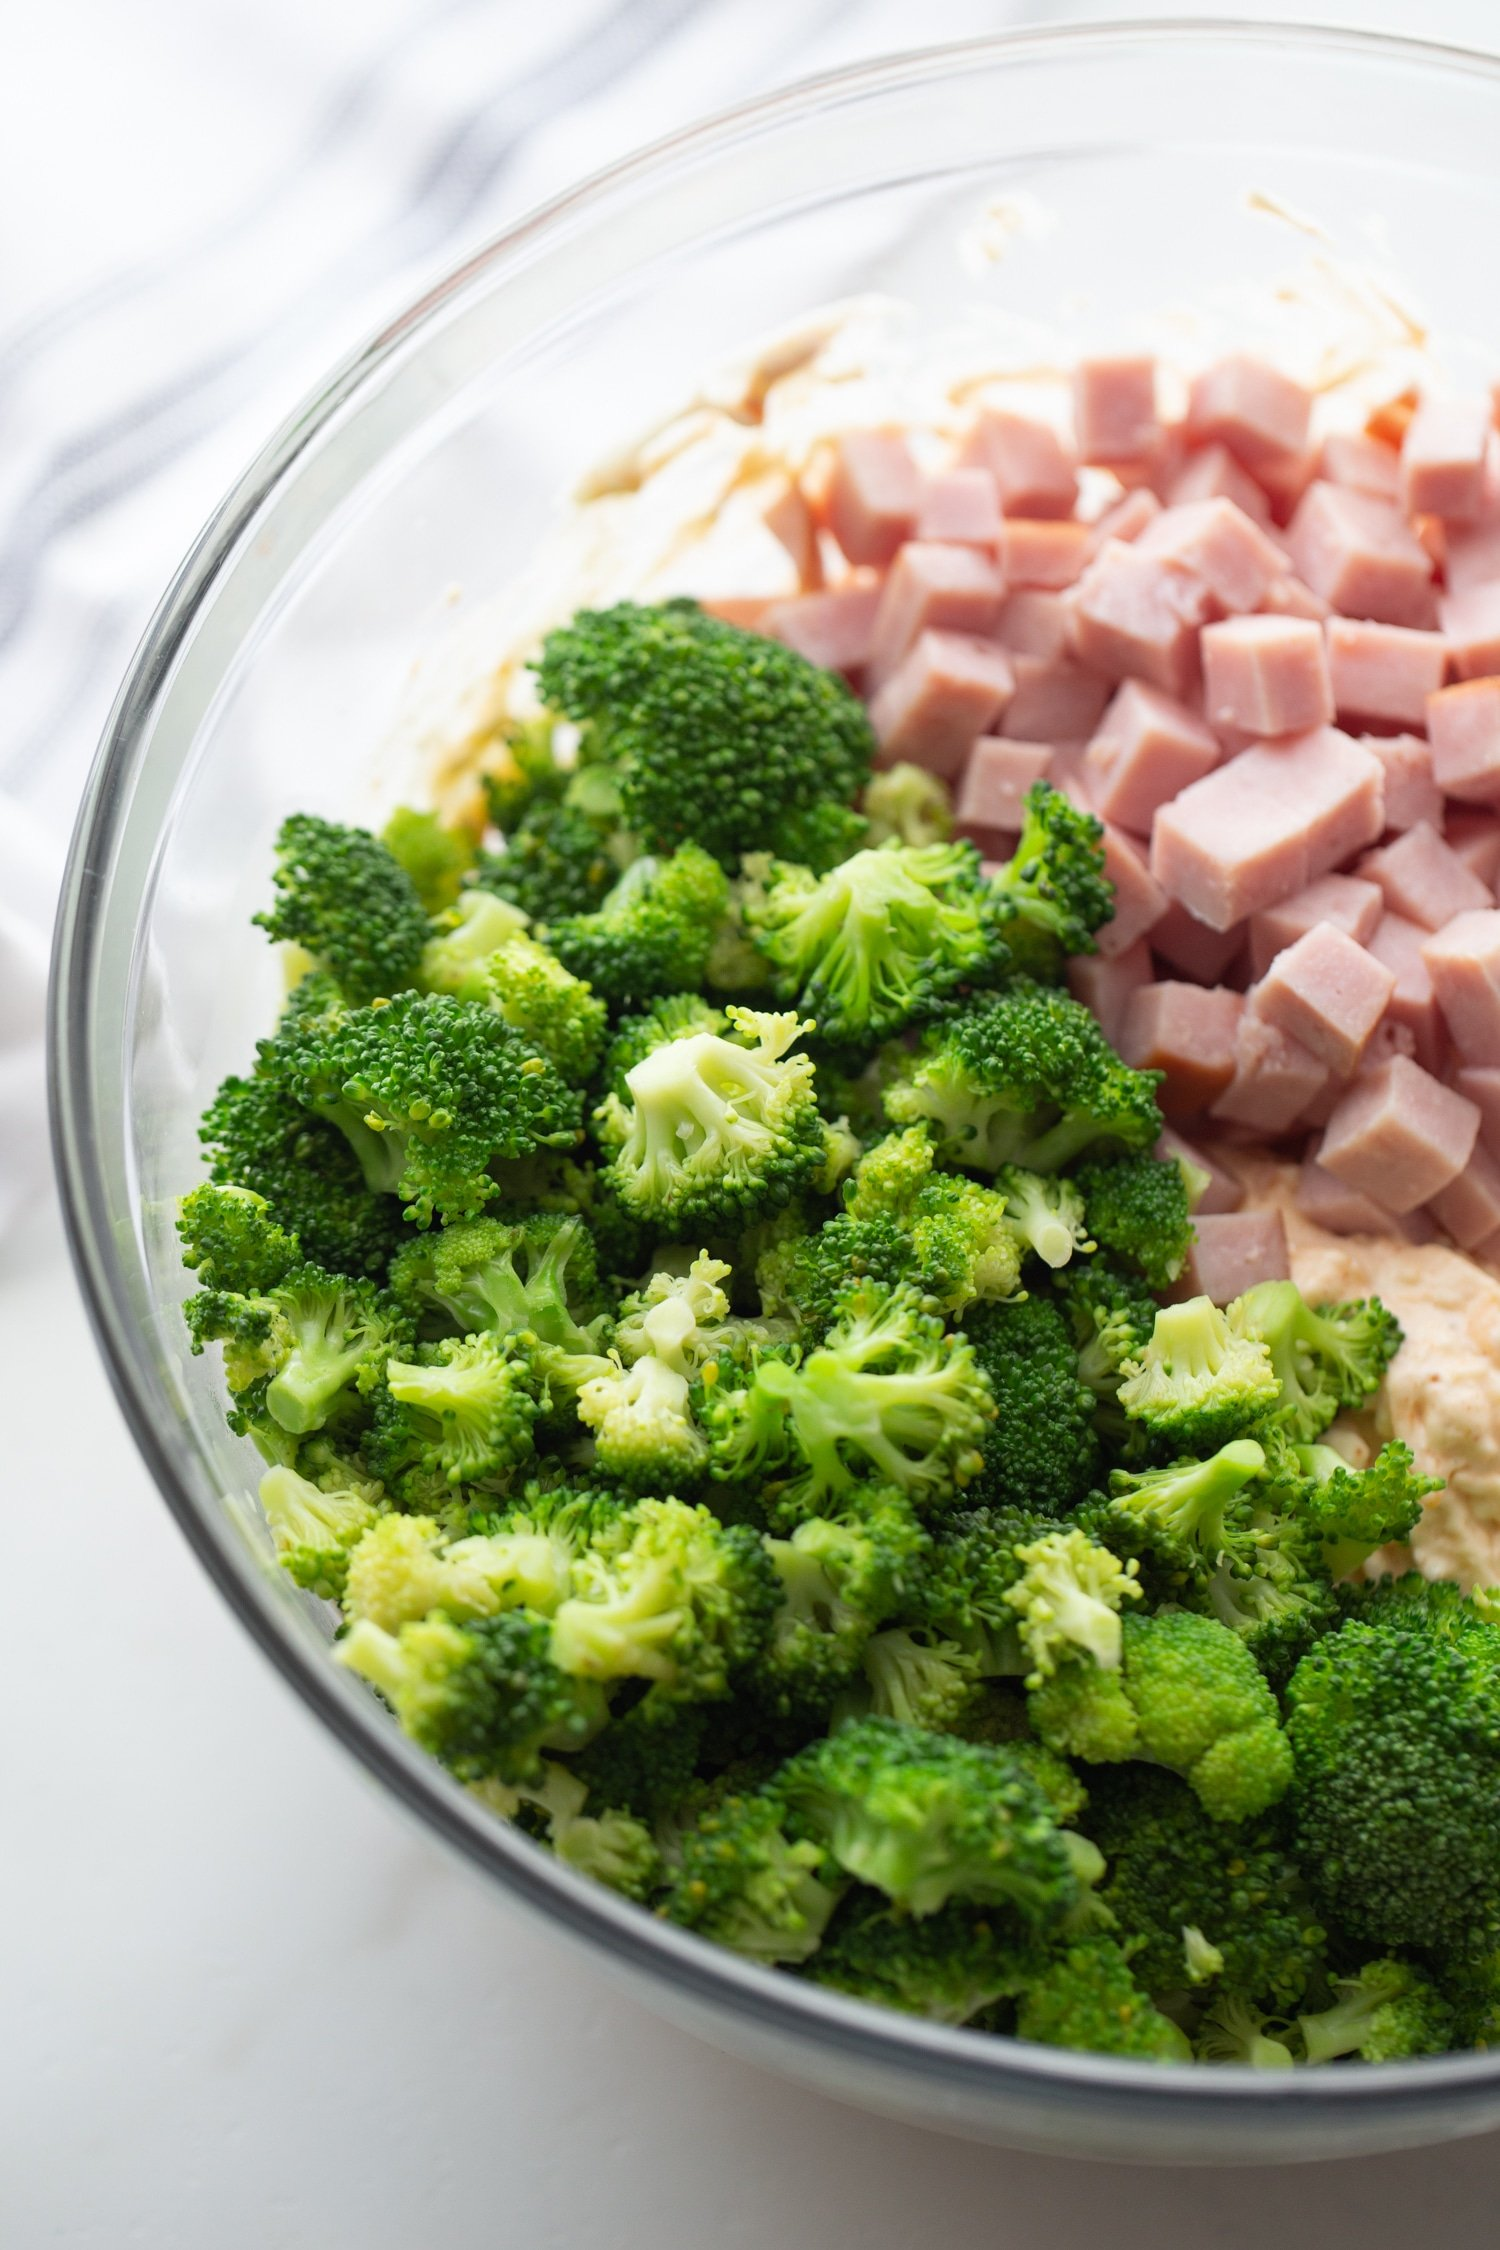 fresh broccoli florets with diced ham and cheeses in a bowl